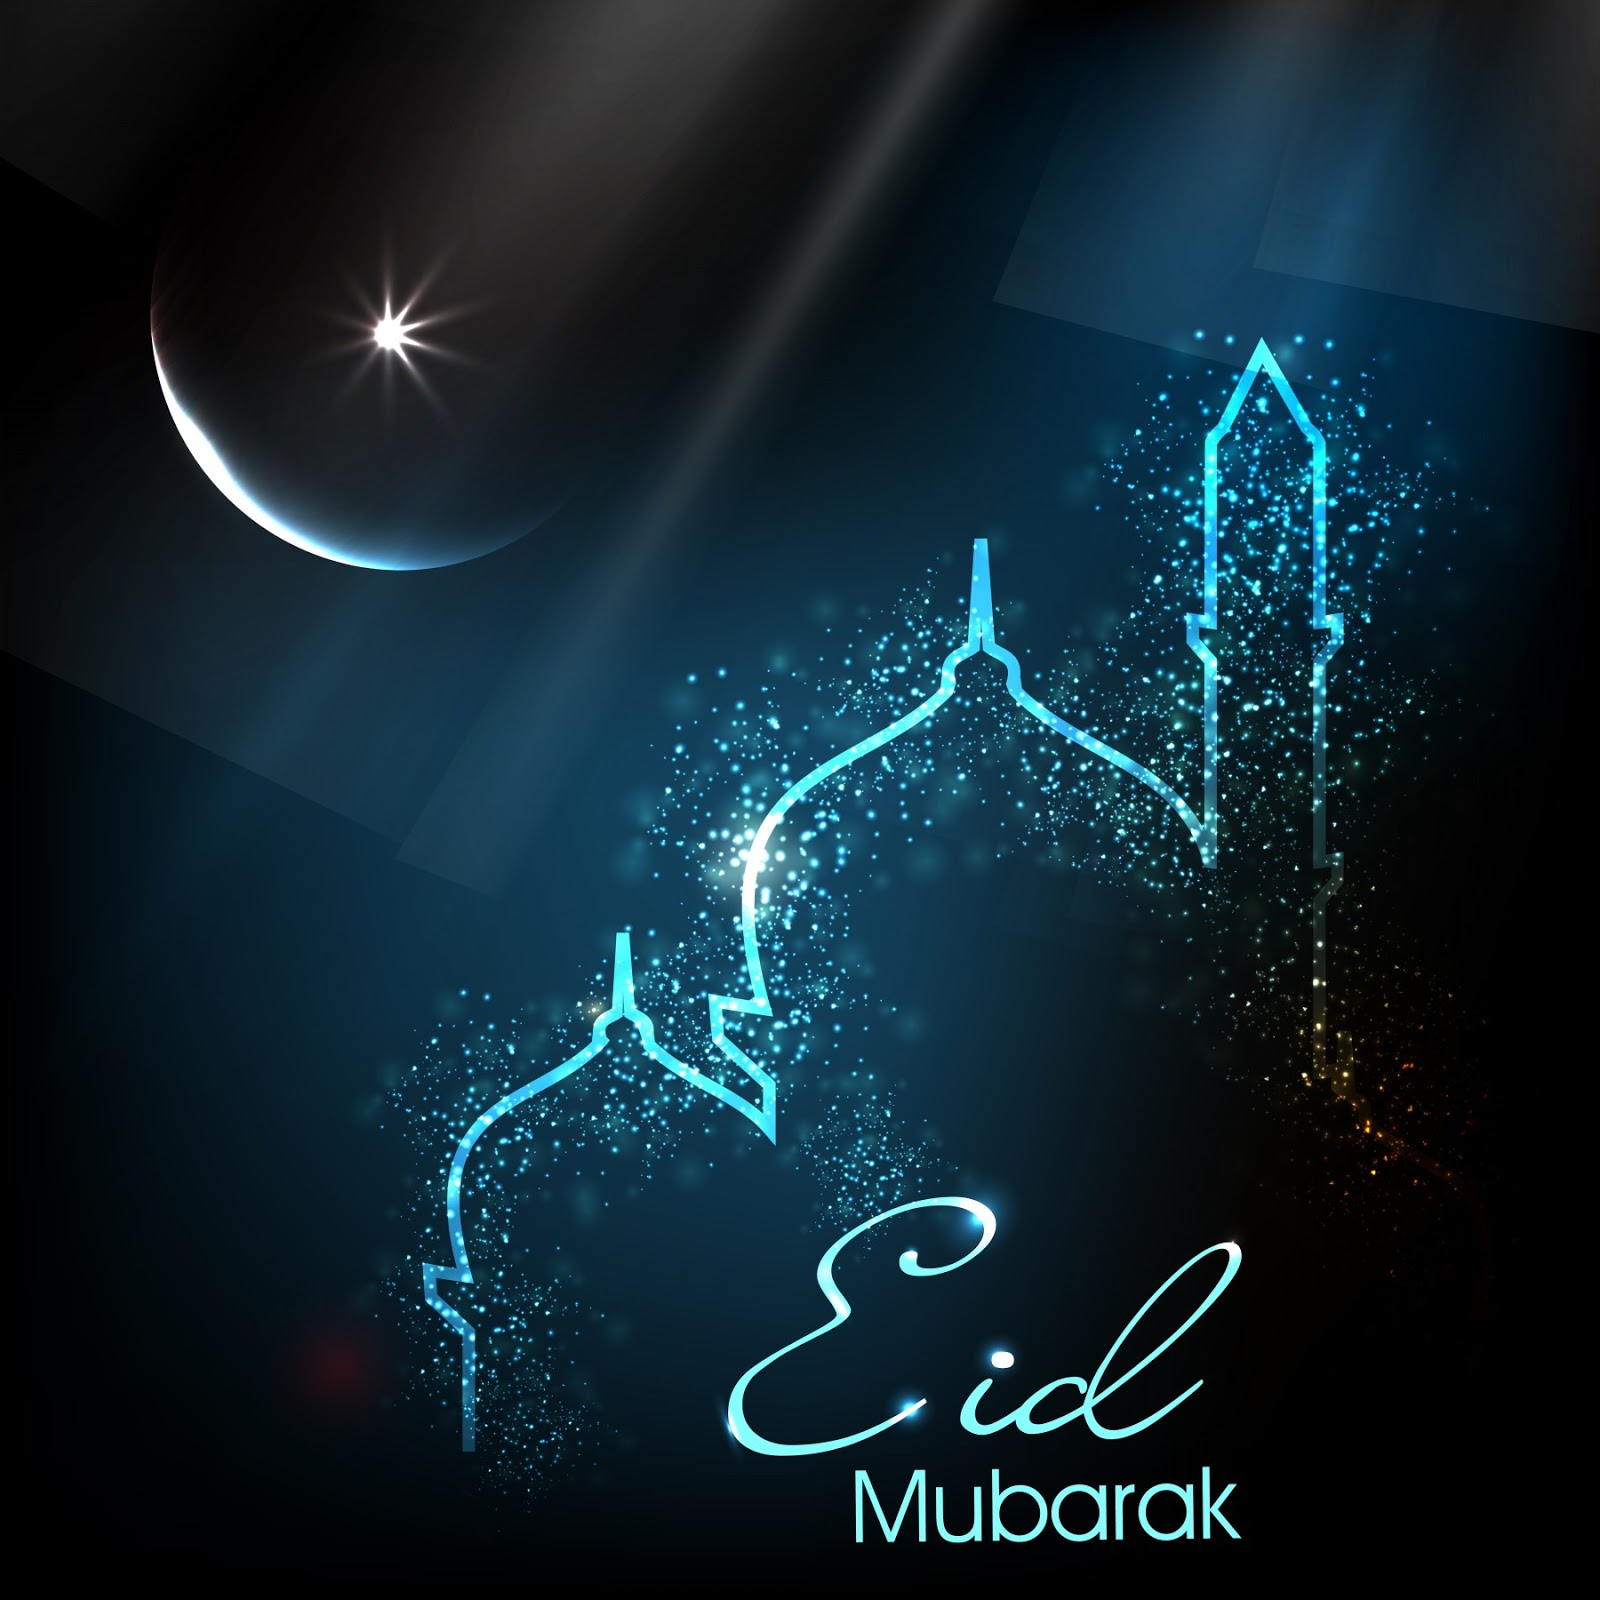 Latest eid mubarak dp for whats app images 2017 and eid mubarak dp dp happy eid mubarak kristyandbryce Choice Image